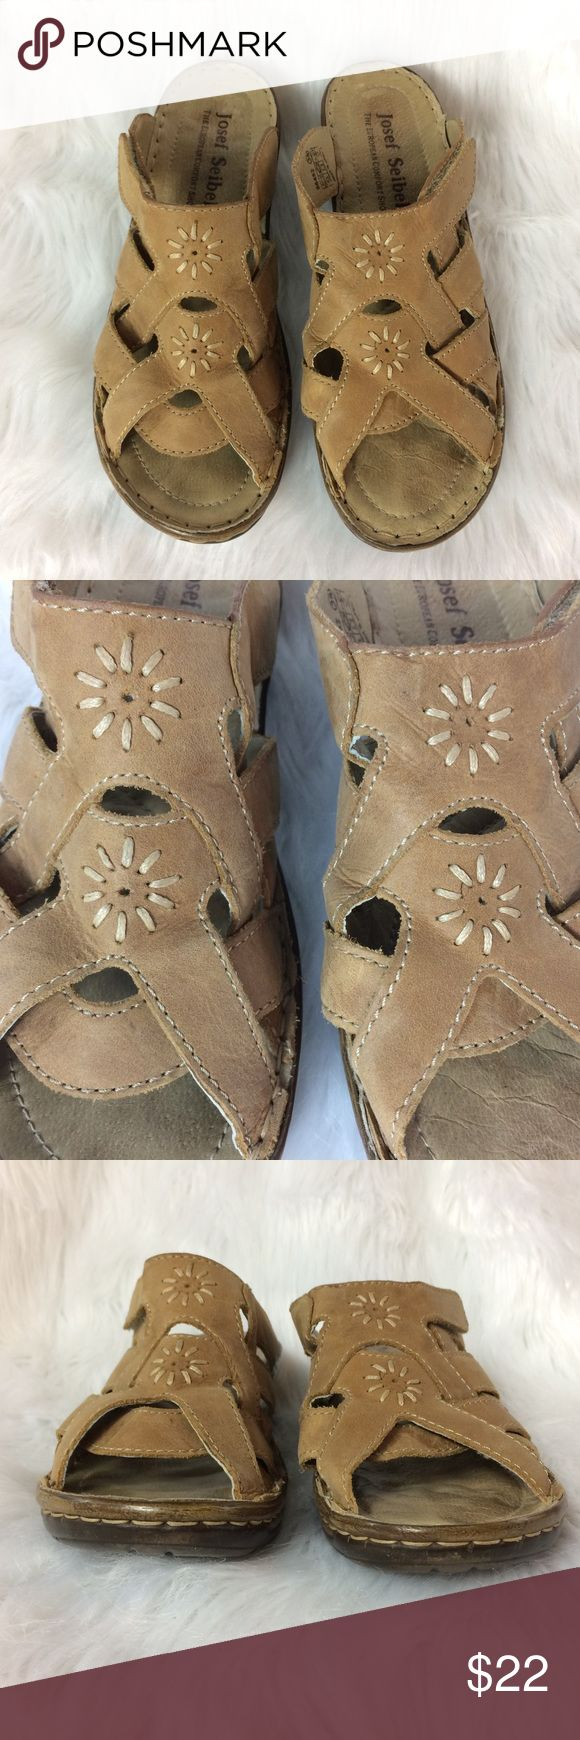 Josef Seibel Strappy Leather Comfort Sandals Sz 39 These sweet sandals are in very good condition with lots of life left! Super comfy!  Thank you for looking! Josef Seibel Shoes Sandals